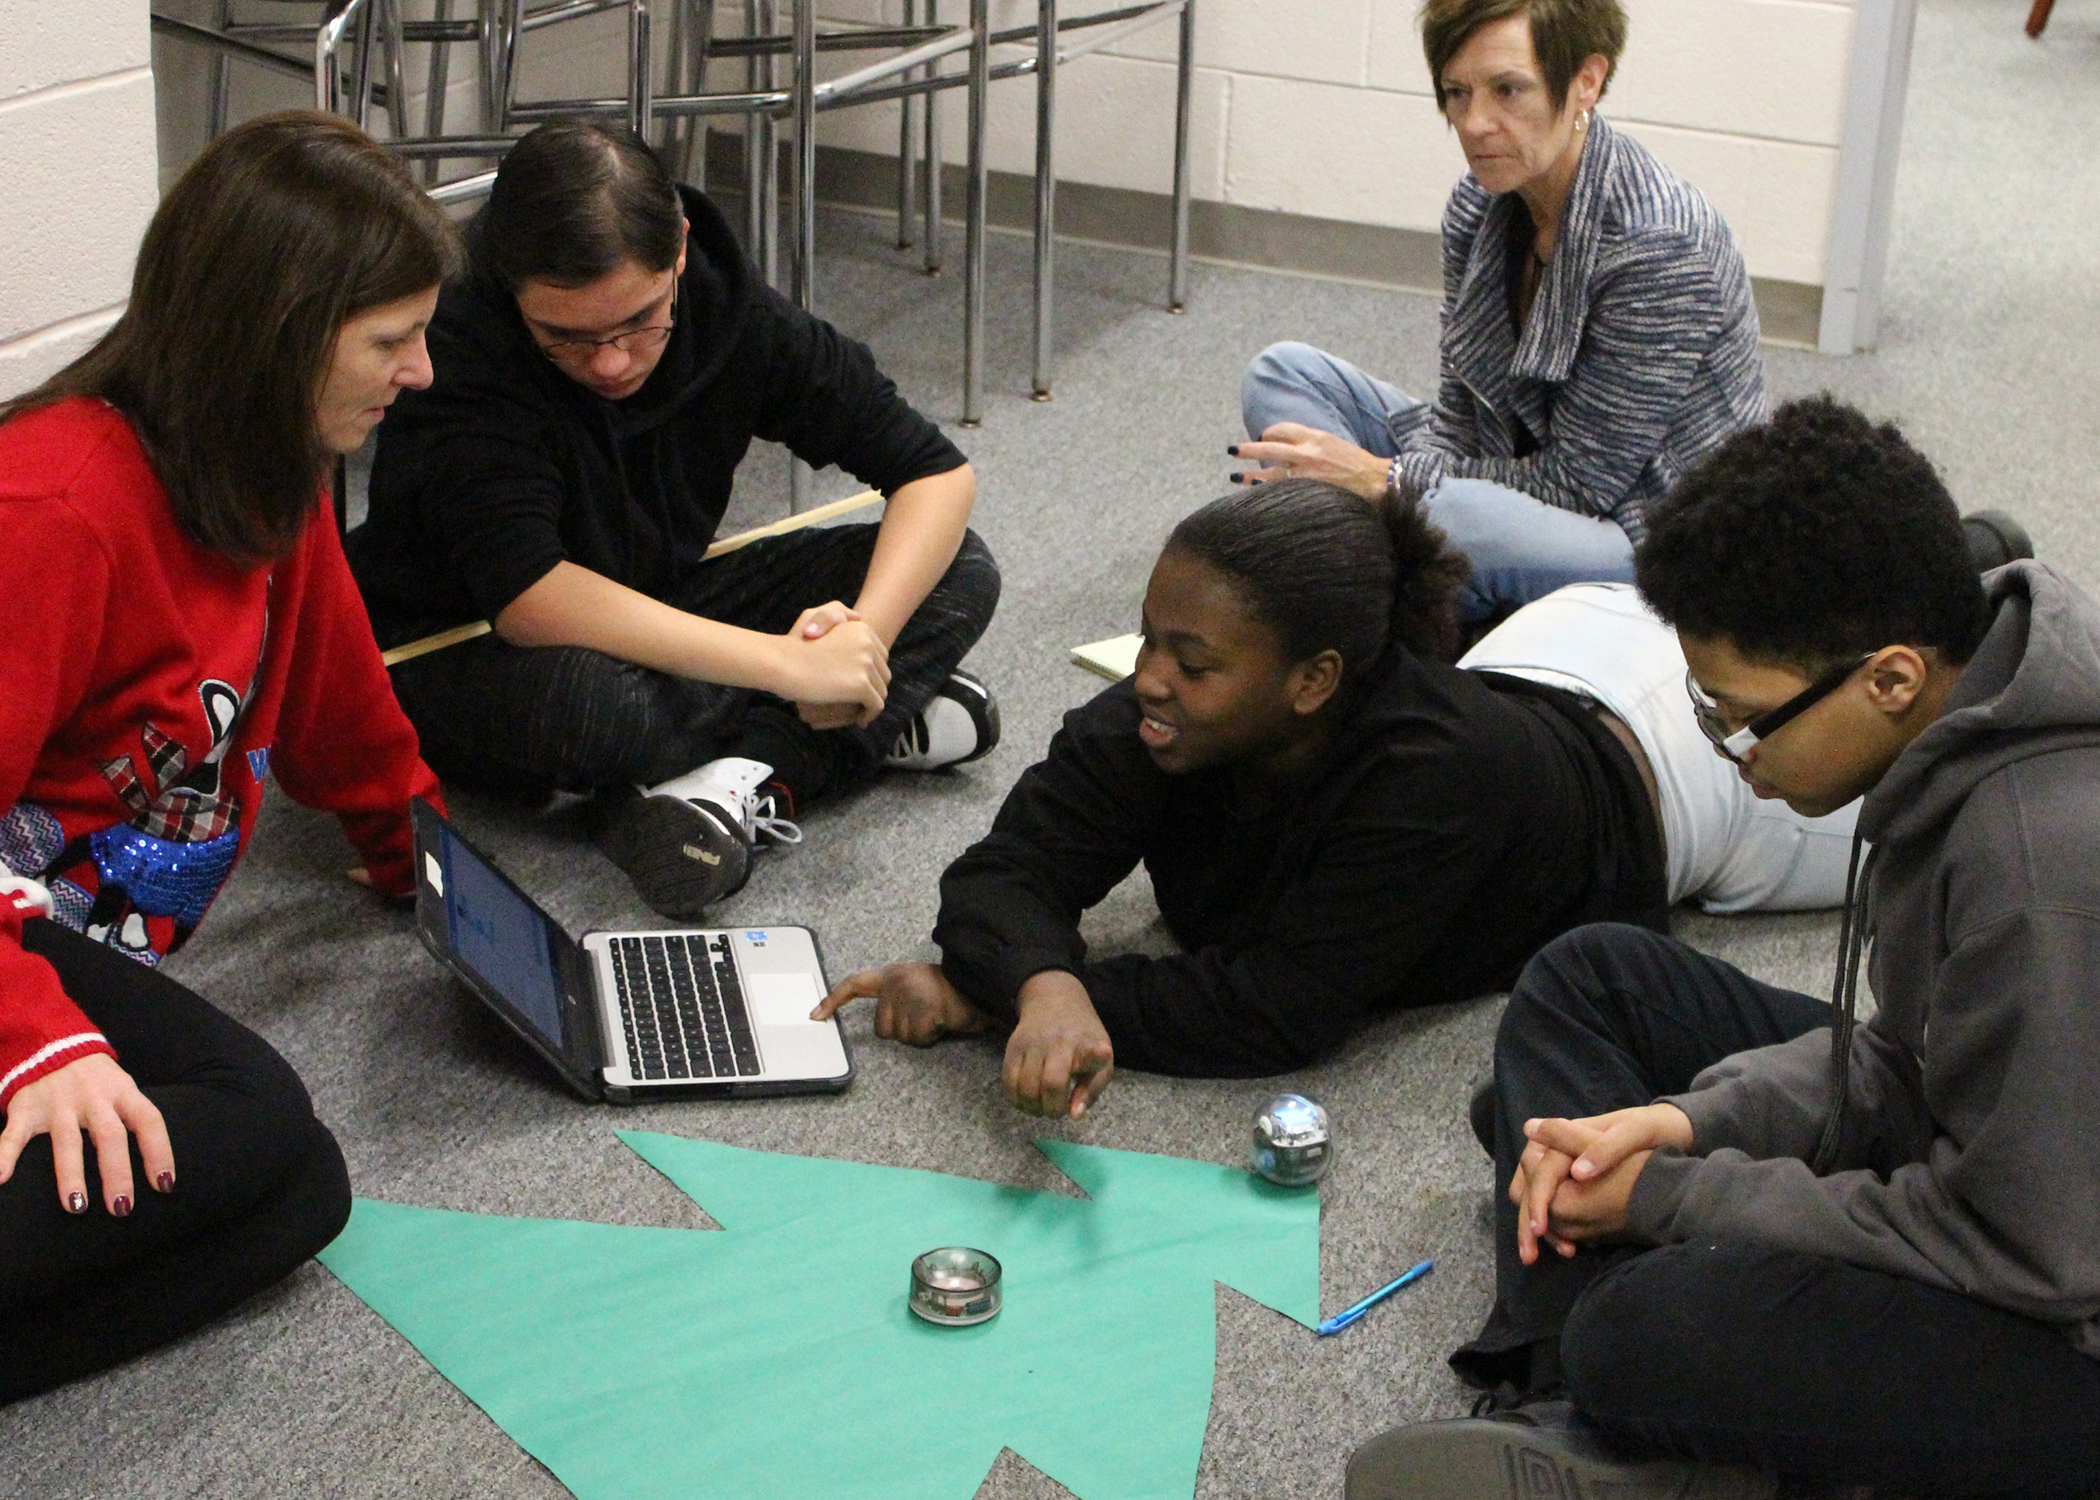 Teacher Nancy McMahon (left) works with students who are designing a coding program that will enable their Sphero Bolt robot to travel along the perimeter of the green tree shape.